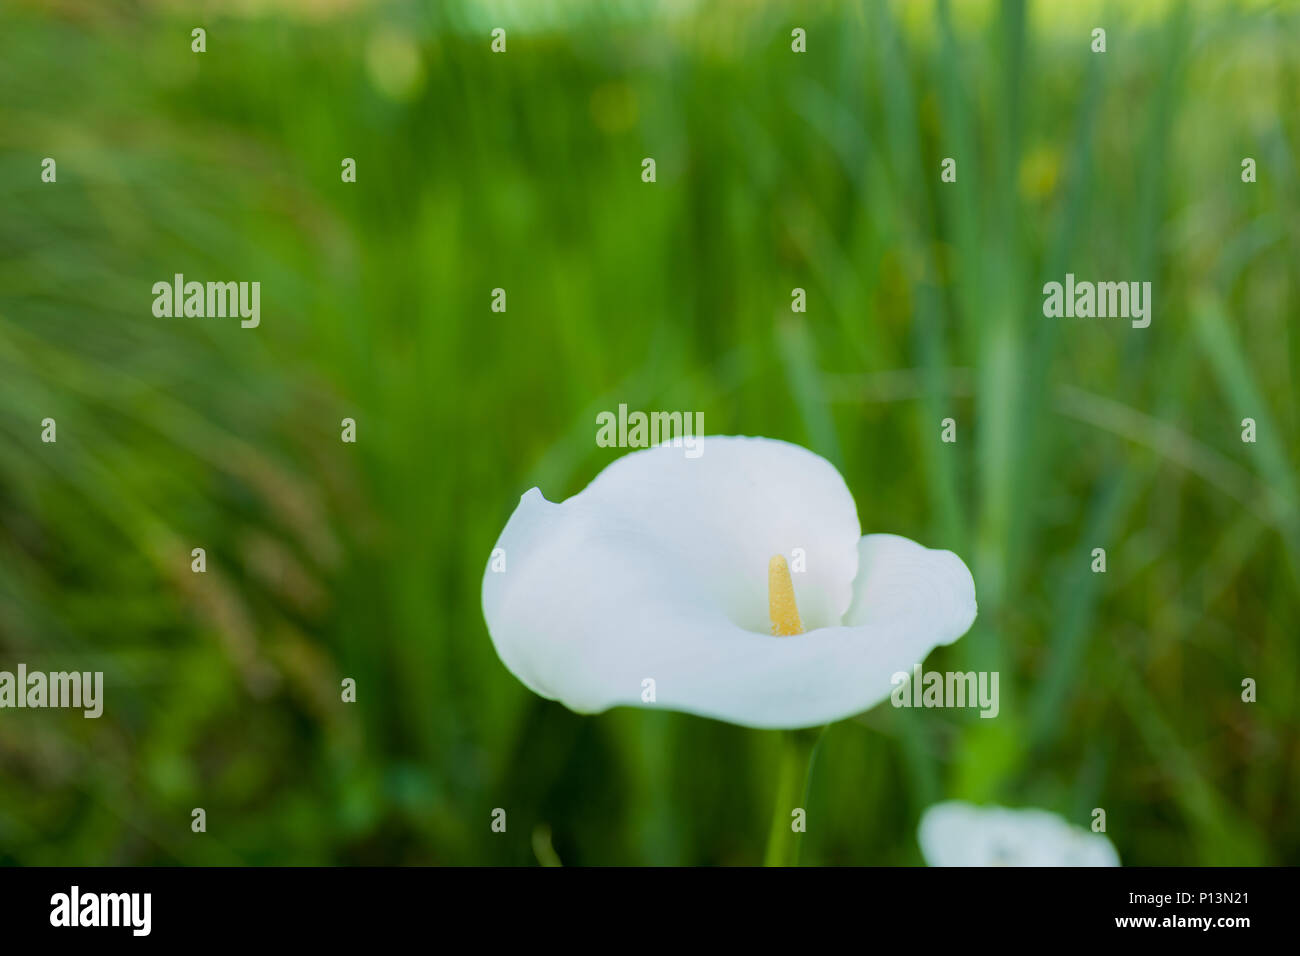 Wild delicate white calla lily flower with yellow stamen stock photo wild delicate white calla lily flower with yellow stamen izmirmasajfo